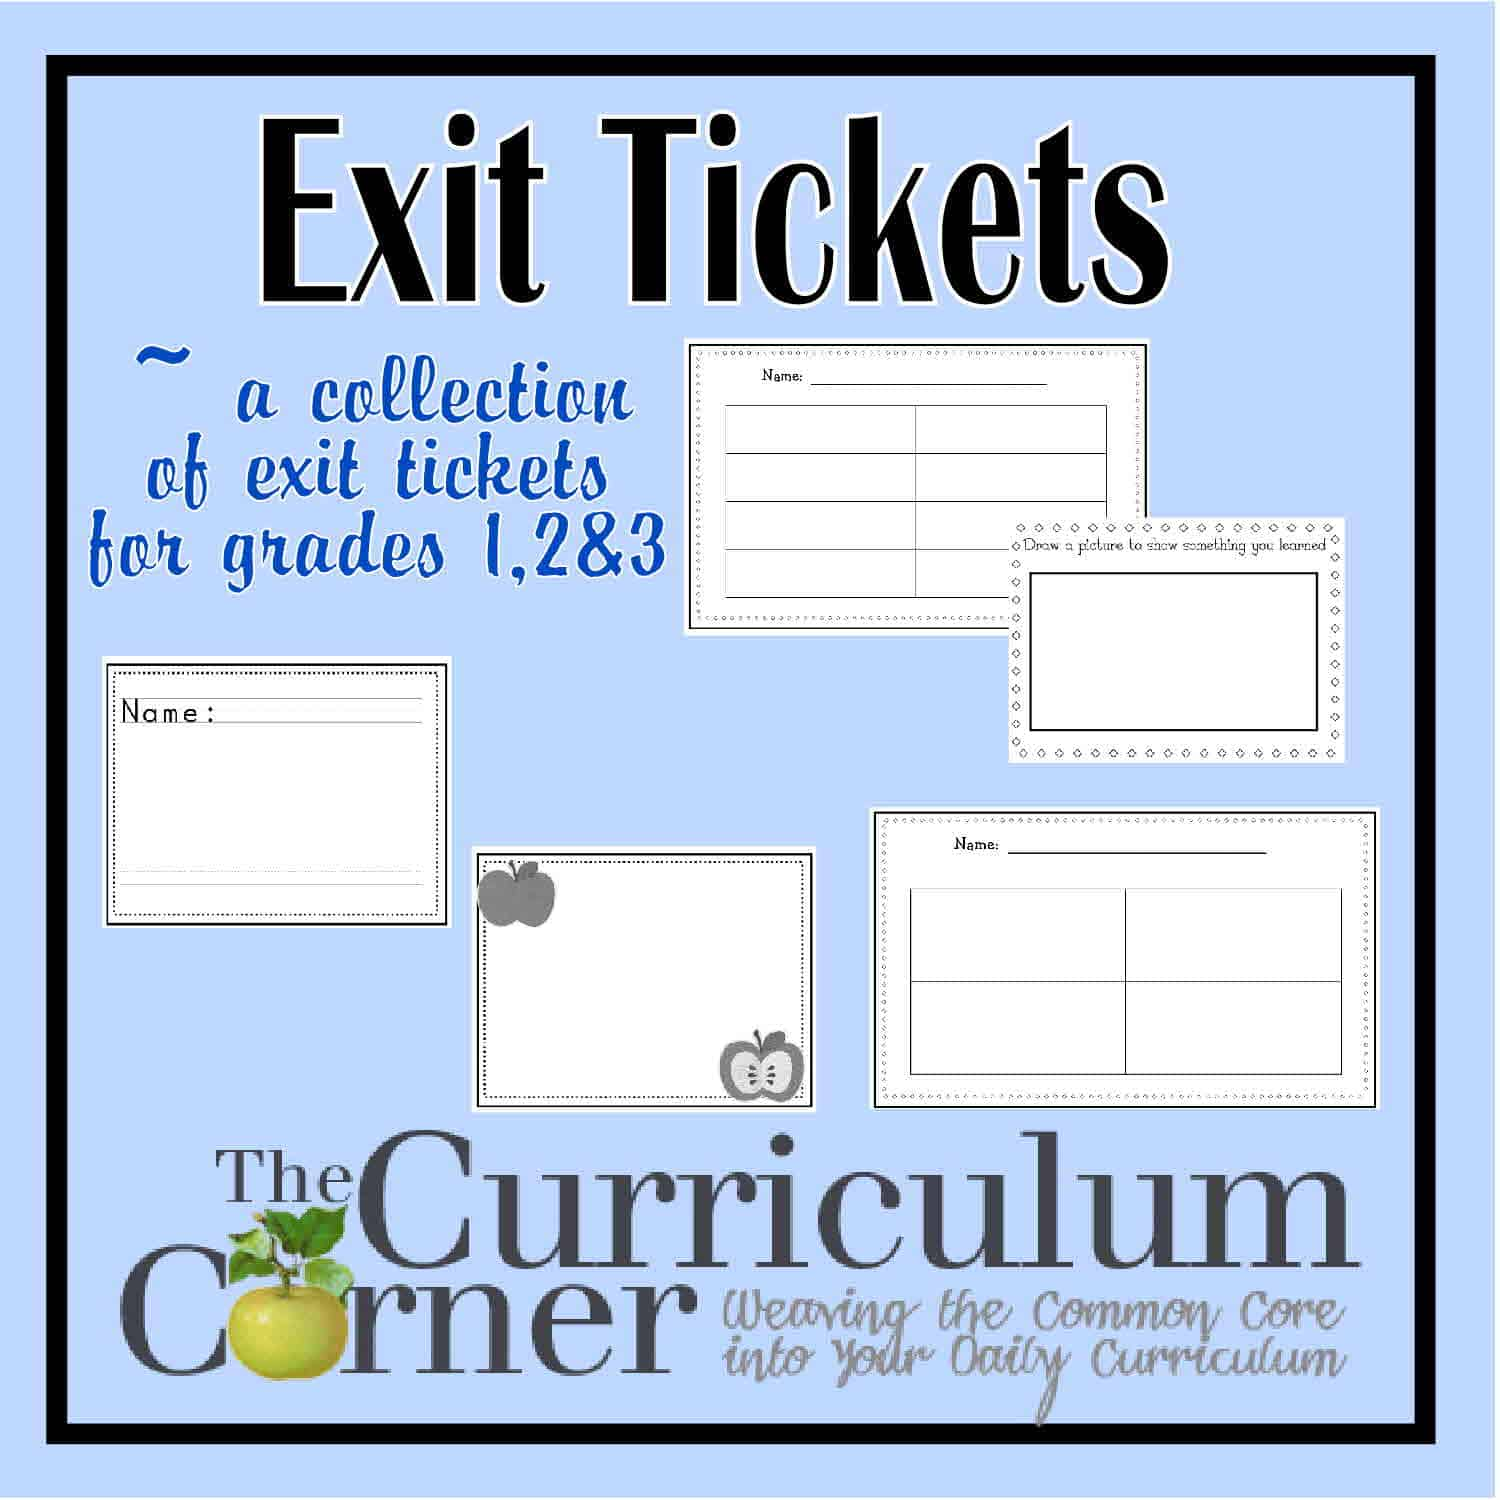 Generic Exit Tickets for Grades 1, 2 & 3